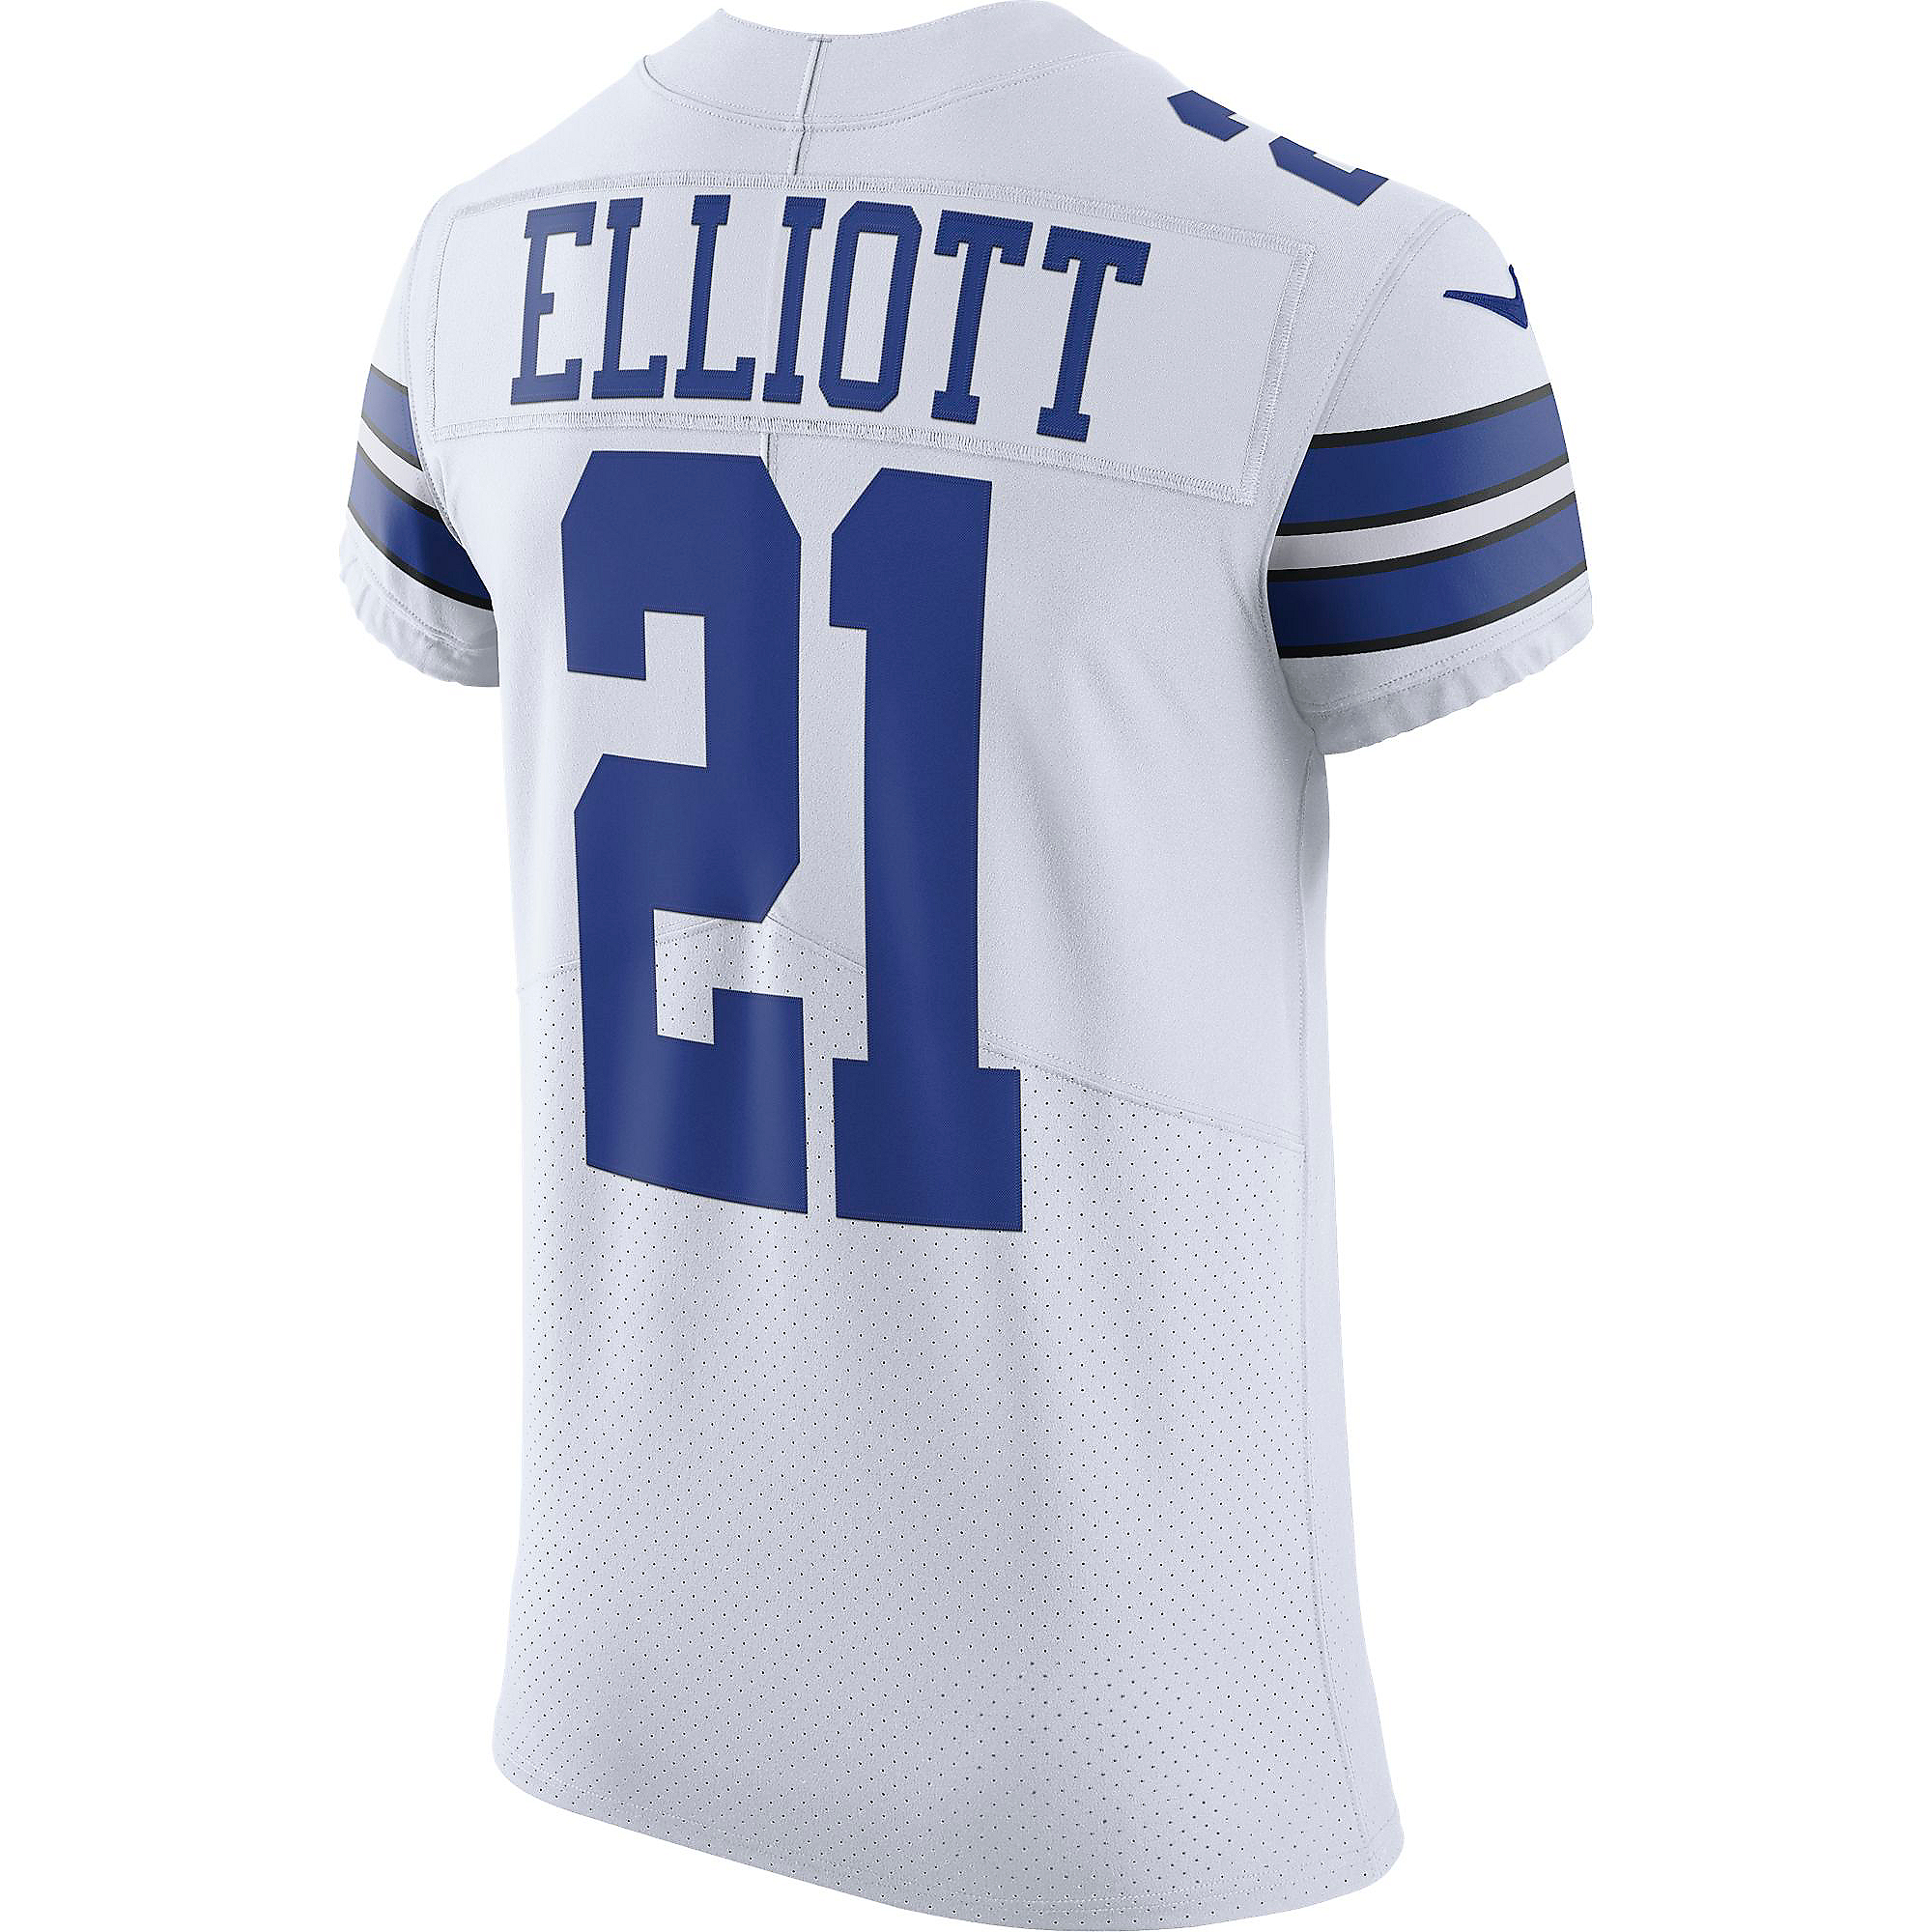 Dallas Cowboys Ezekiel Elliott #21 Nike White Vapor Elite Authentic Jersey